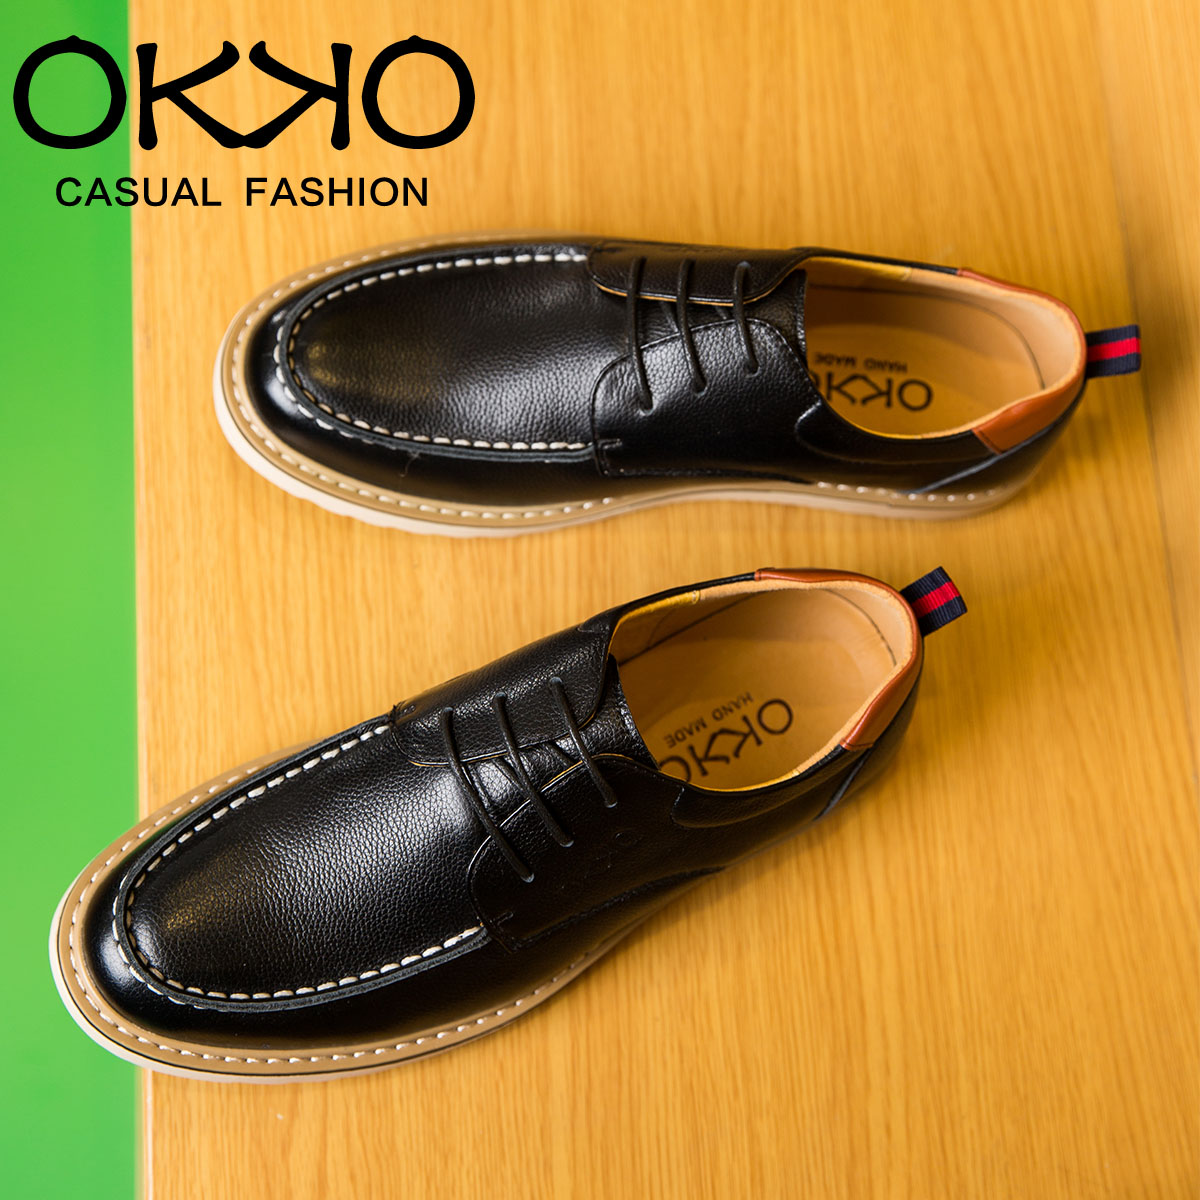 Okko autumn and winter new men's casual shoes to help low shoes lace england men's leather first layer of leather shoes influx of men